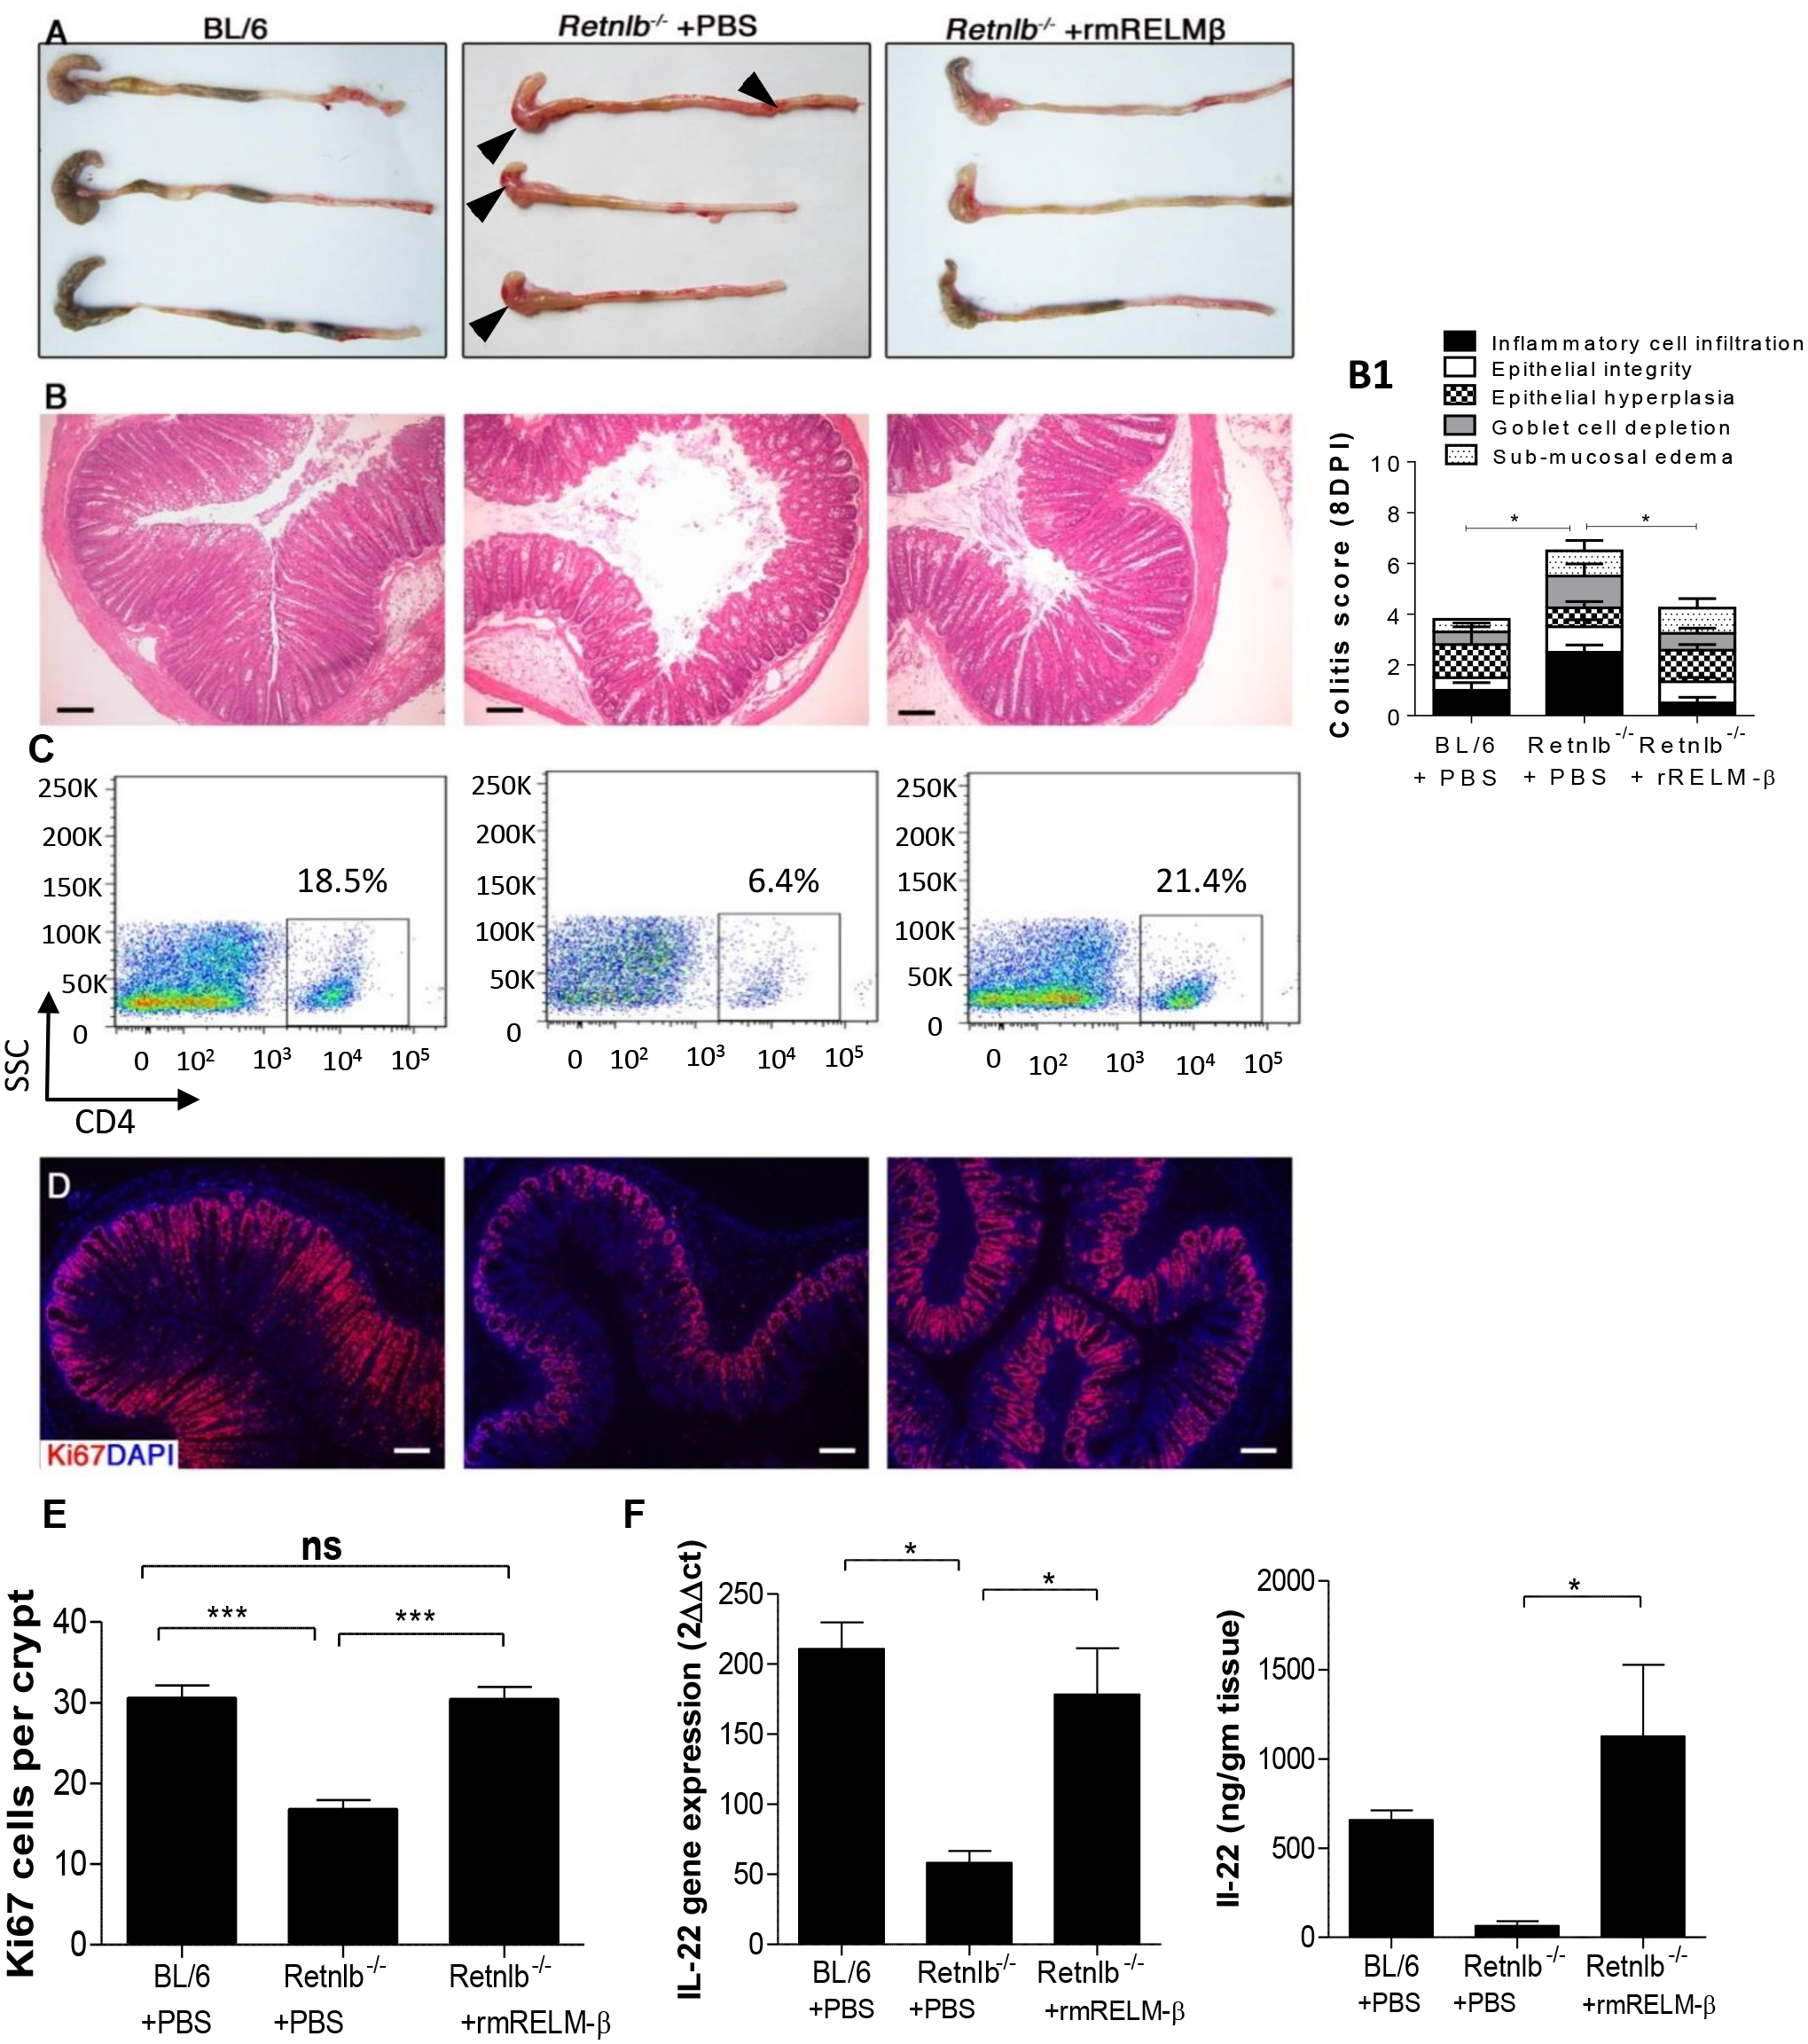 Reconstitution with recombinant RELM-β protects infected <i>Retnlb</i><sup><i>-/-</i></sup> mice.